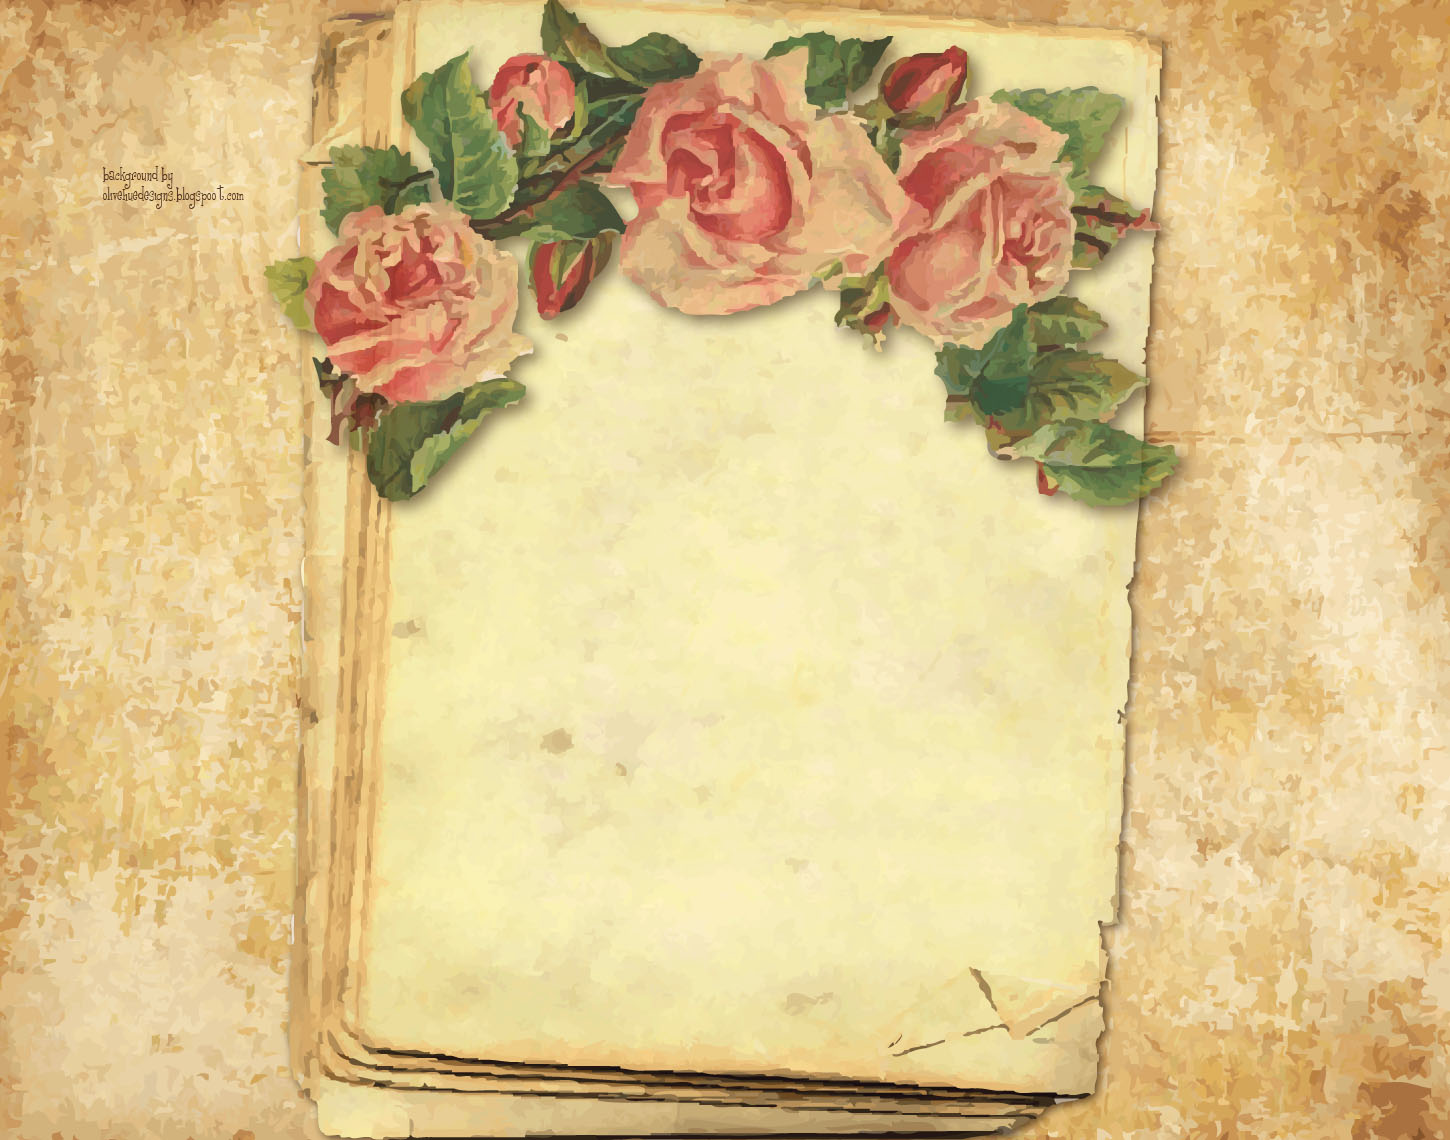 old crow backgrounds & designs: victorian rose